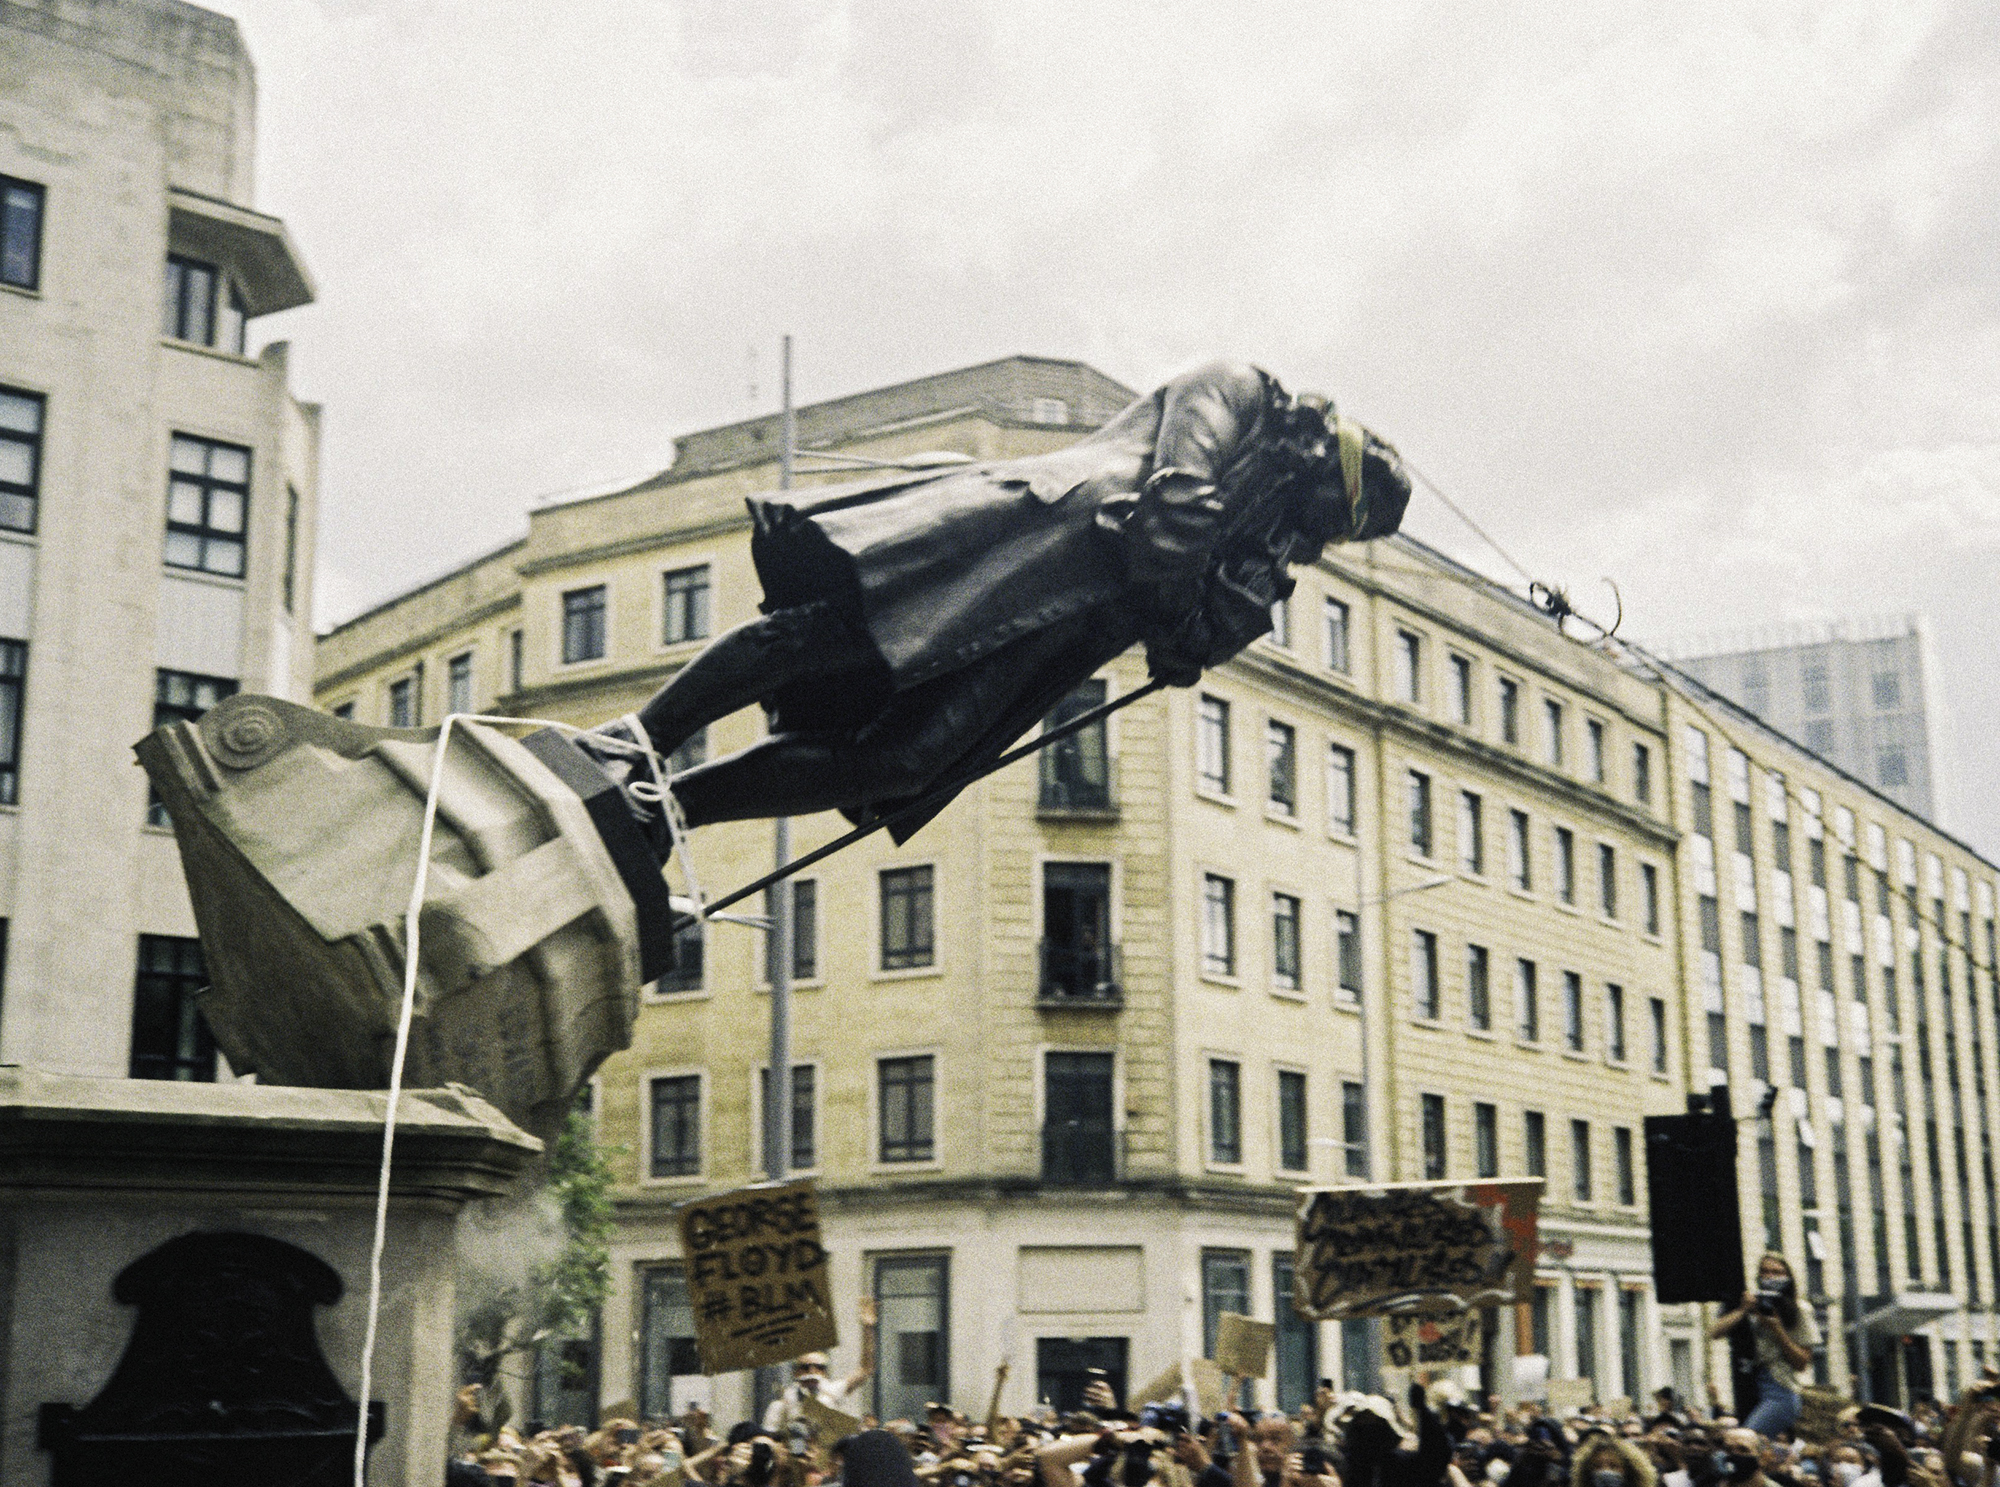 Colston statue falling (Pic: Ned Collyer)